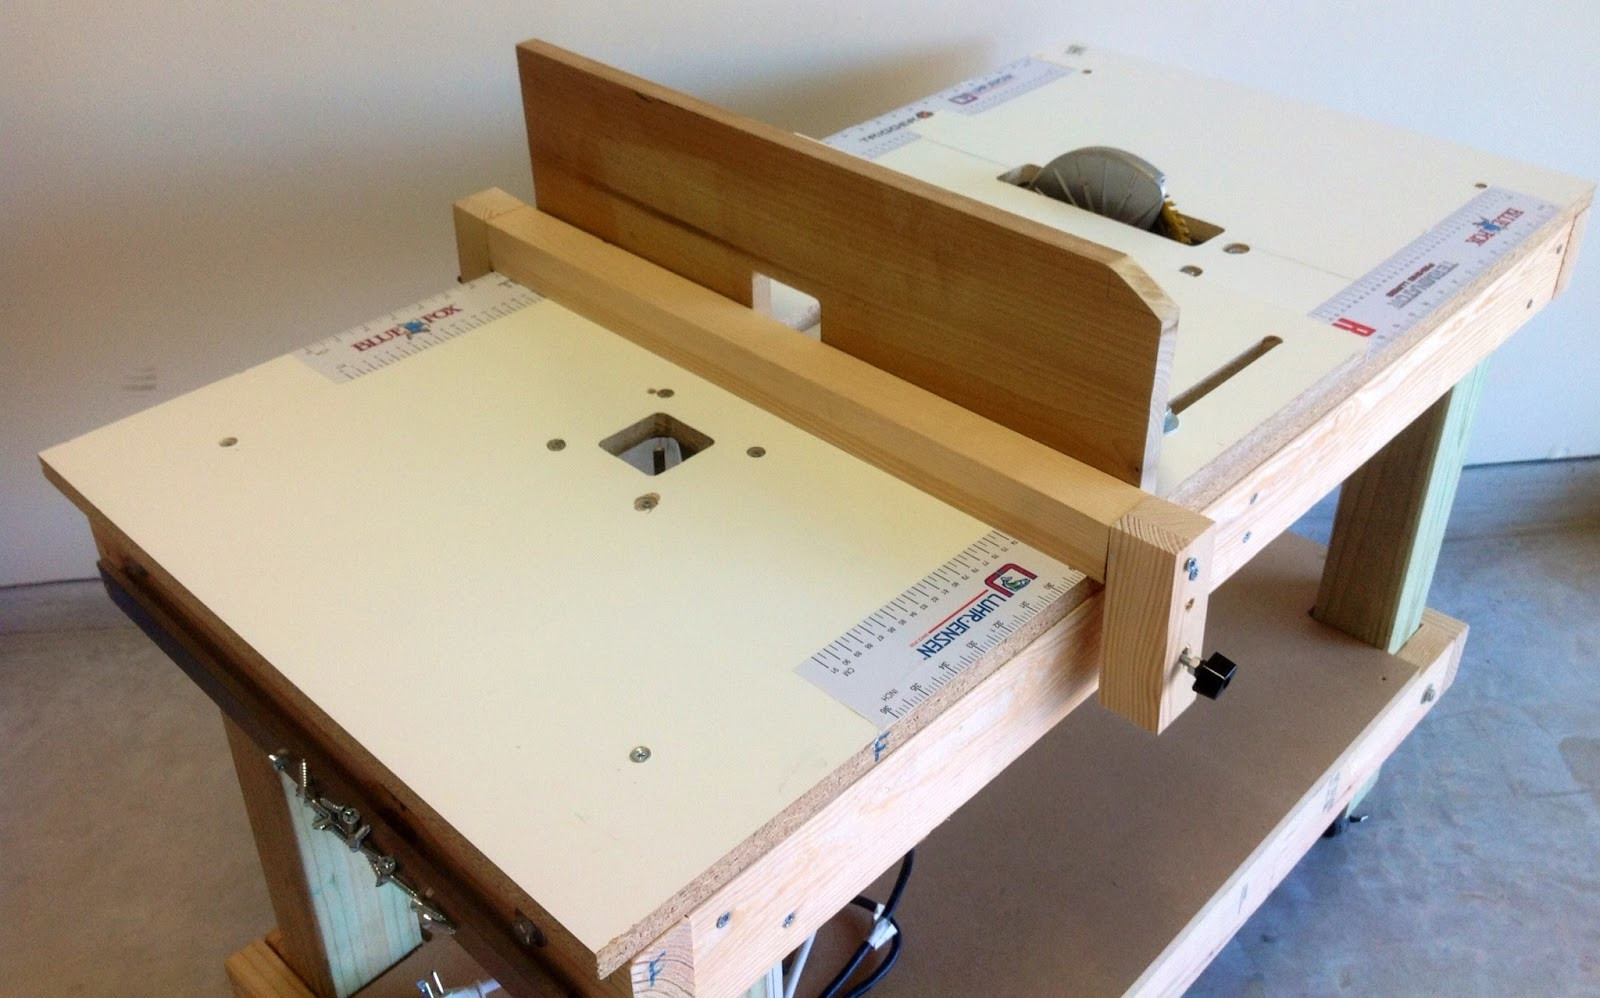 Best ideas about DIY Table Saw Plans . Save or Pin Thinking Wood Project 2 DIY Portable 3 in 1 Workbench Now.